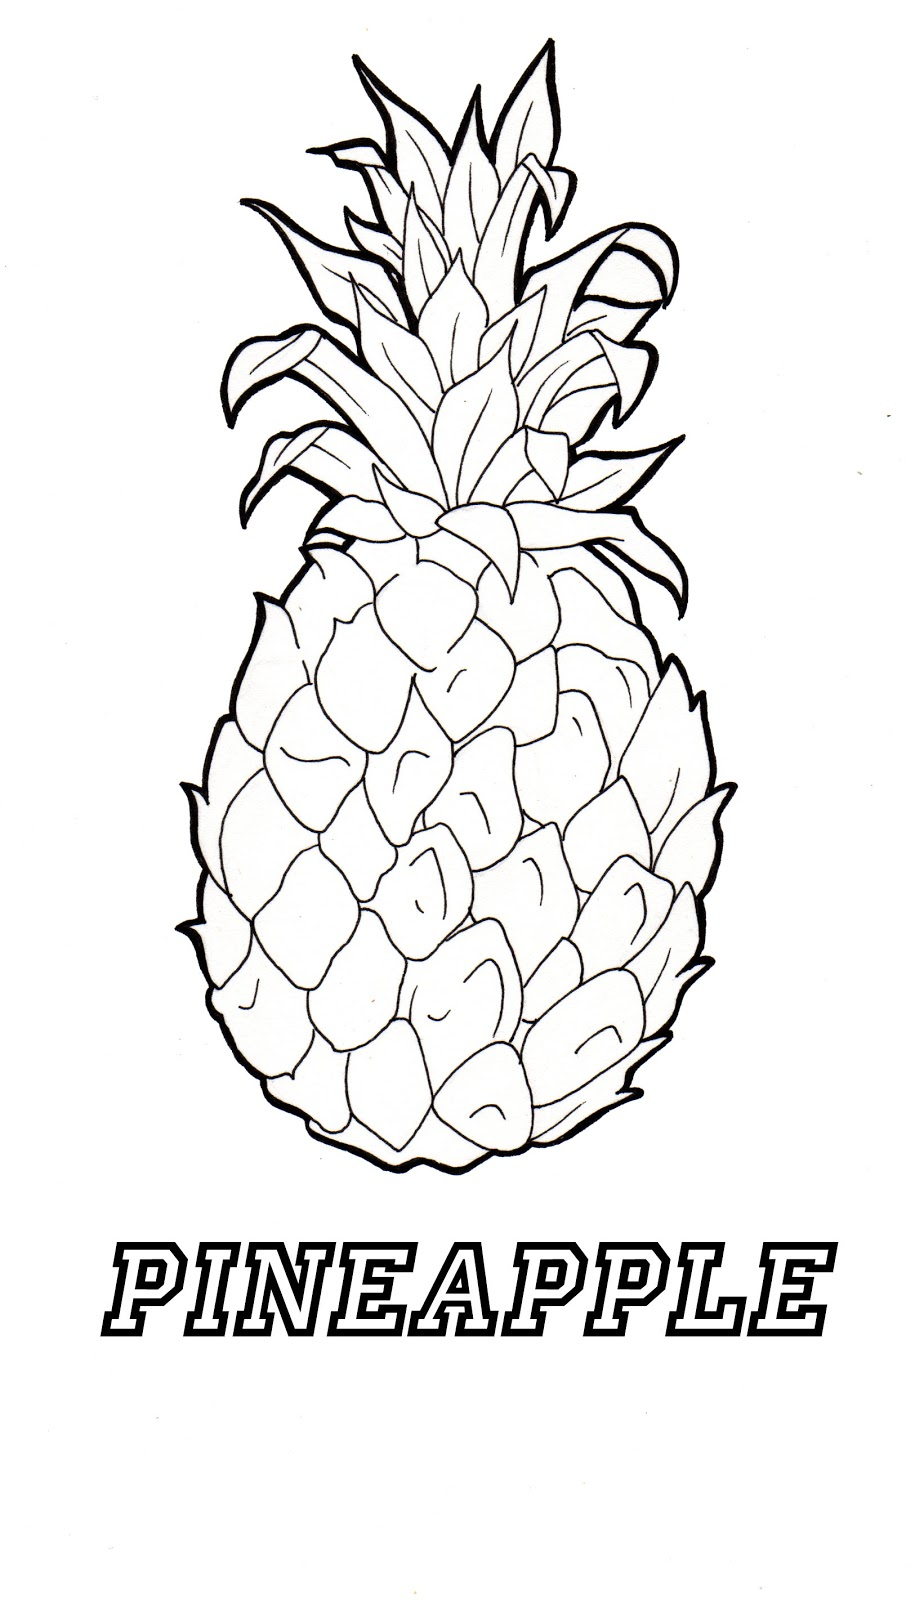 pineapple printable coloring page - pineapple coloring sheets cake ideas and designs